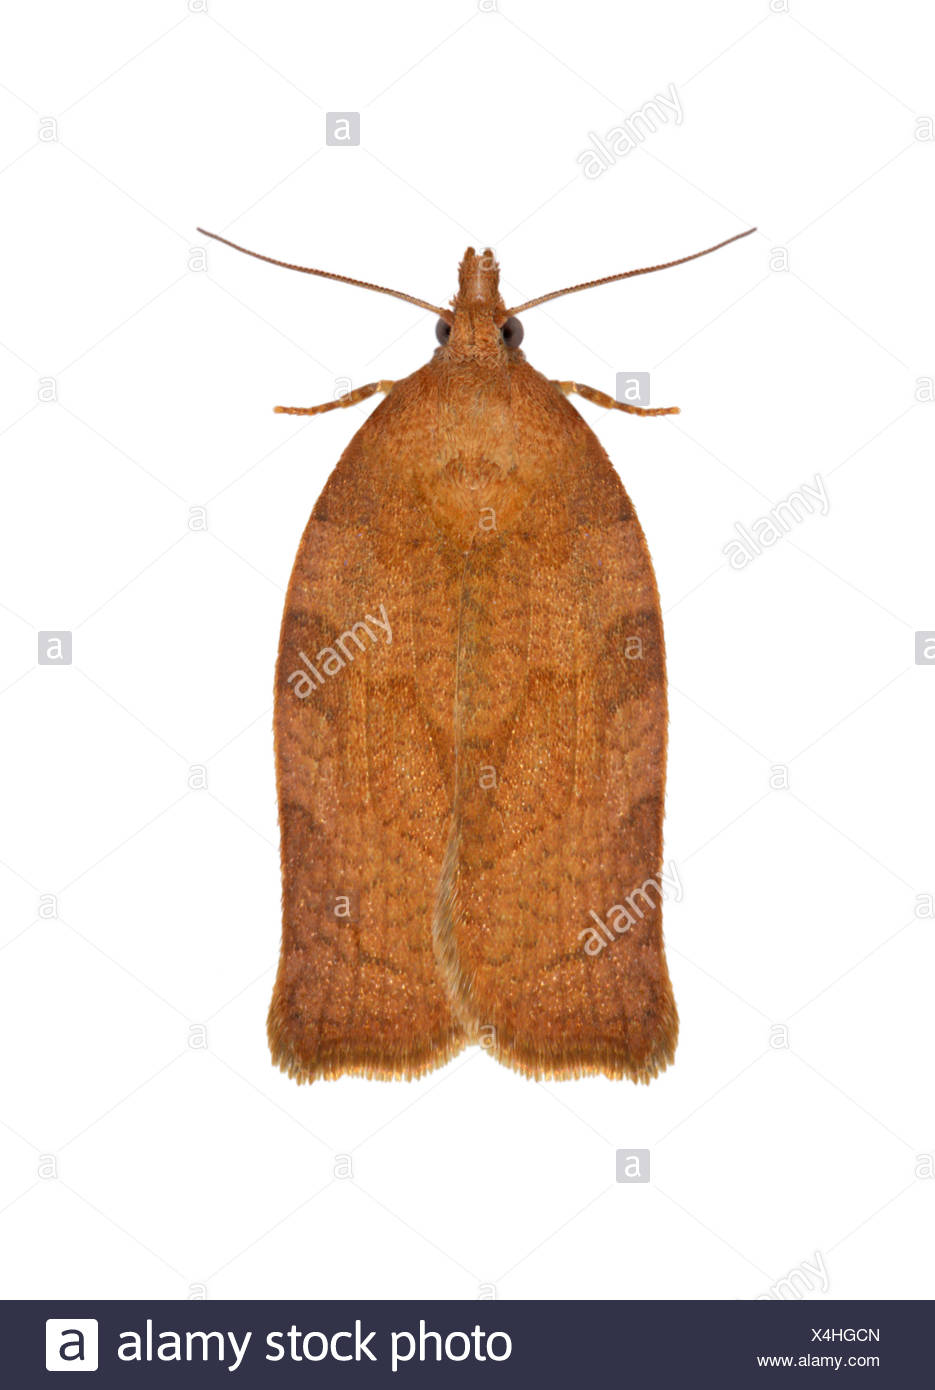 49.026 (0972) Dark Fruit-tree Tortrix - Pandemis heparana - Stock Image